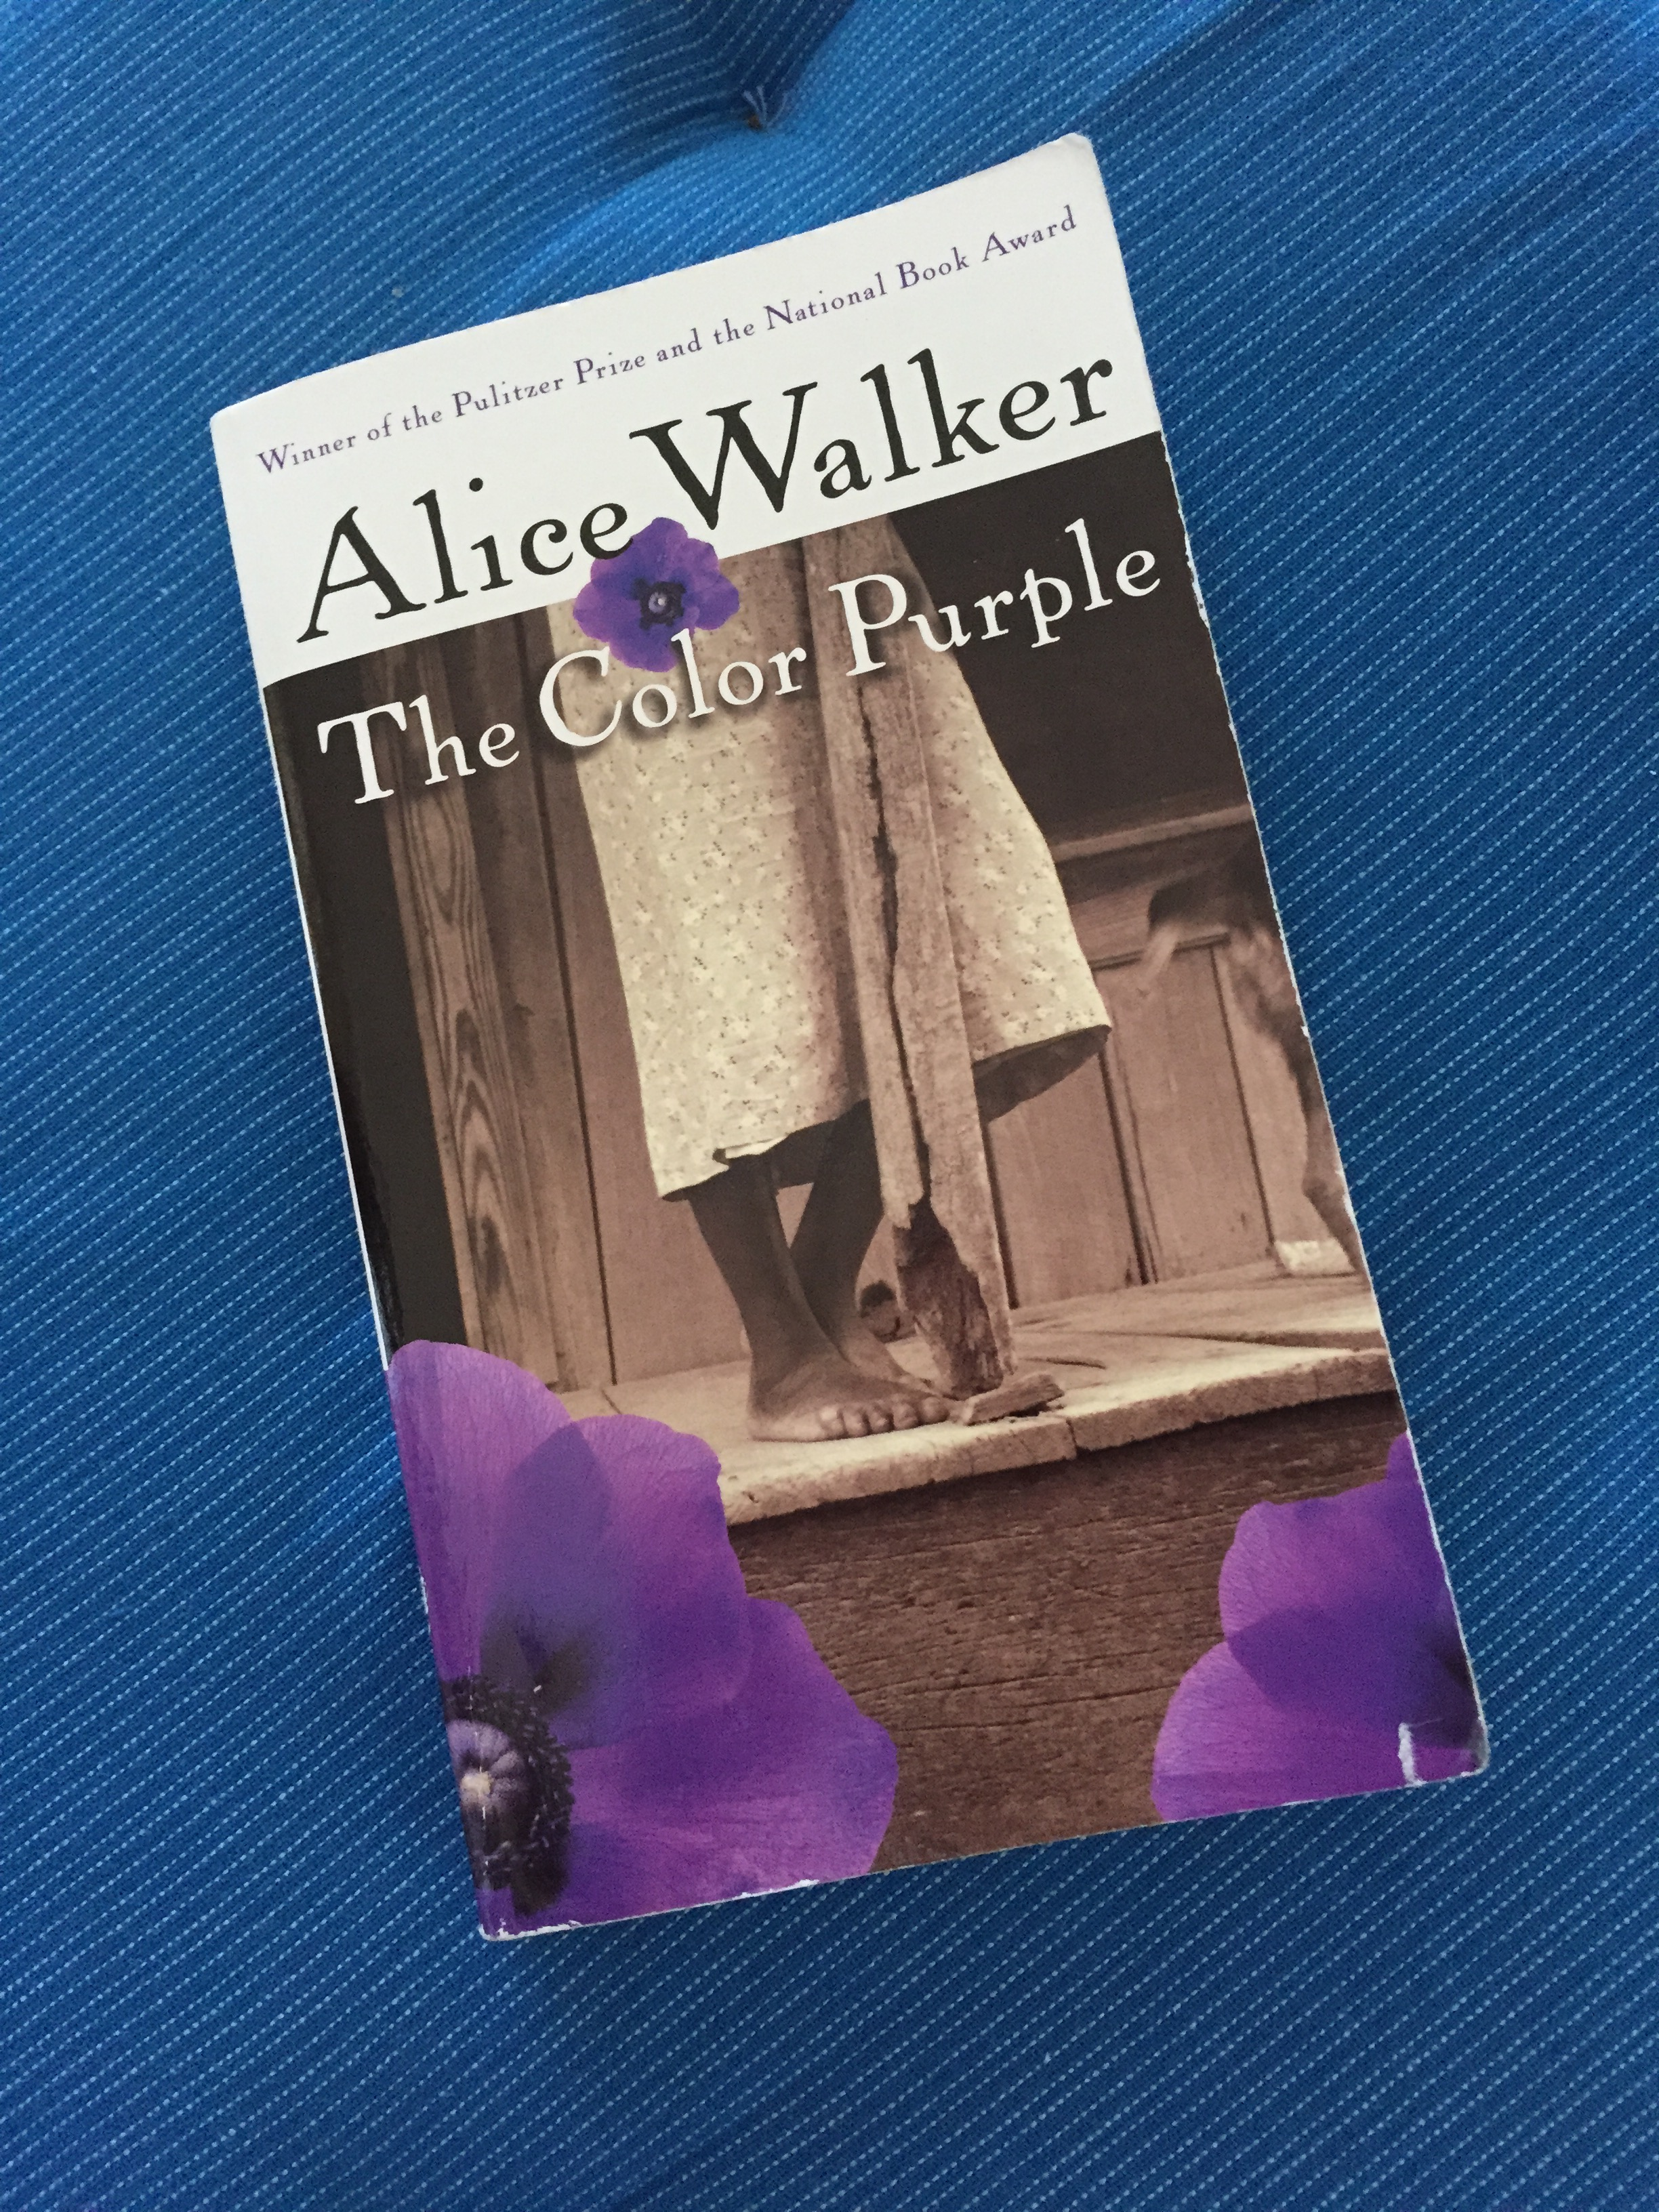 overcoming oppression in the color purple by alice walker Search results you were looking for black, and poor in the color purple by alice walker the color purple by alice walker and black women overcoming oppression.